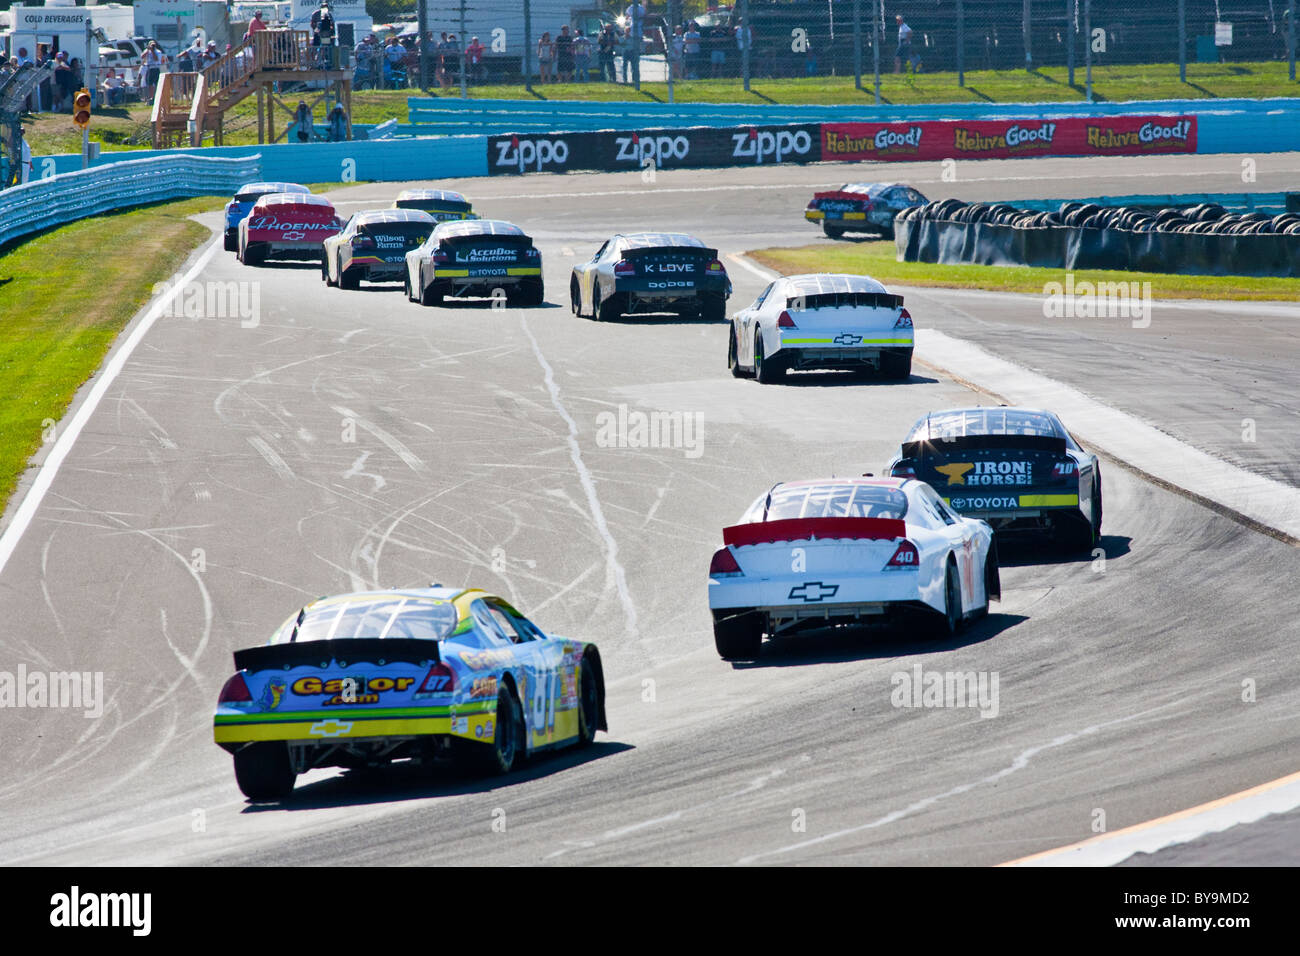 Nascar Race Cars Speeding On Race Track Stock Photo Royalty Free